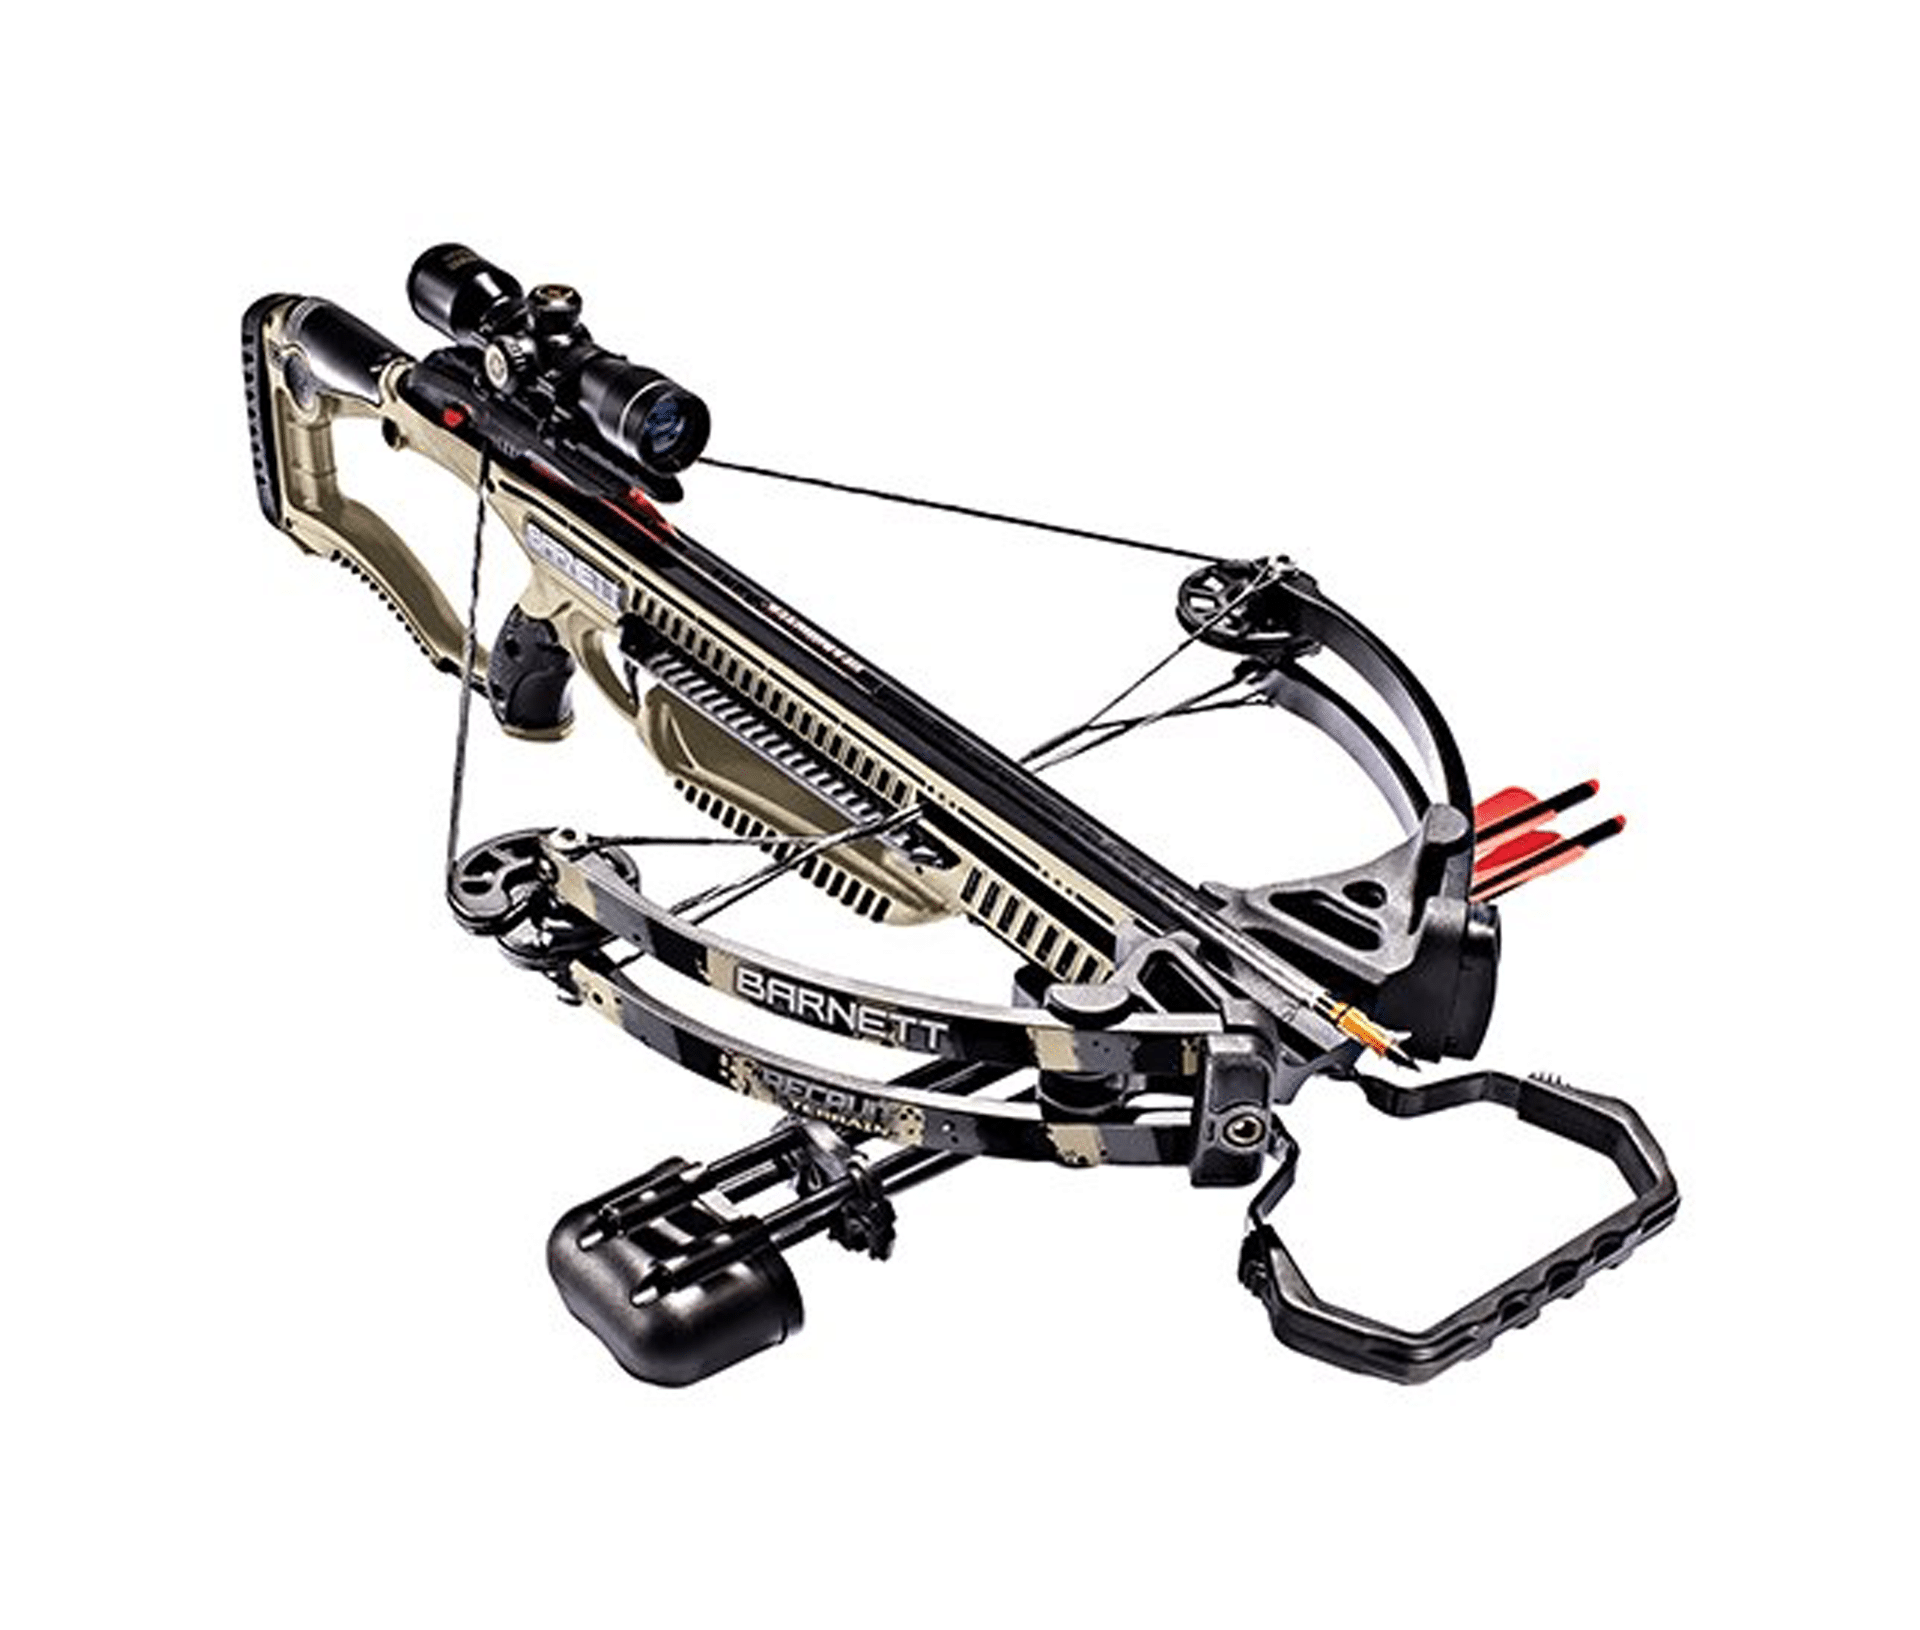 Barnett Recruit Terrain Crossbow, 330FPS